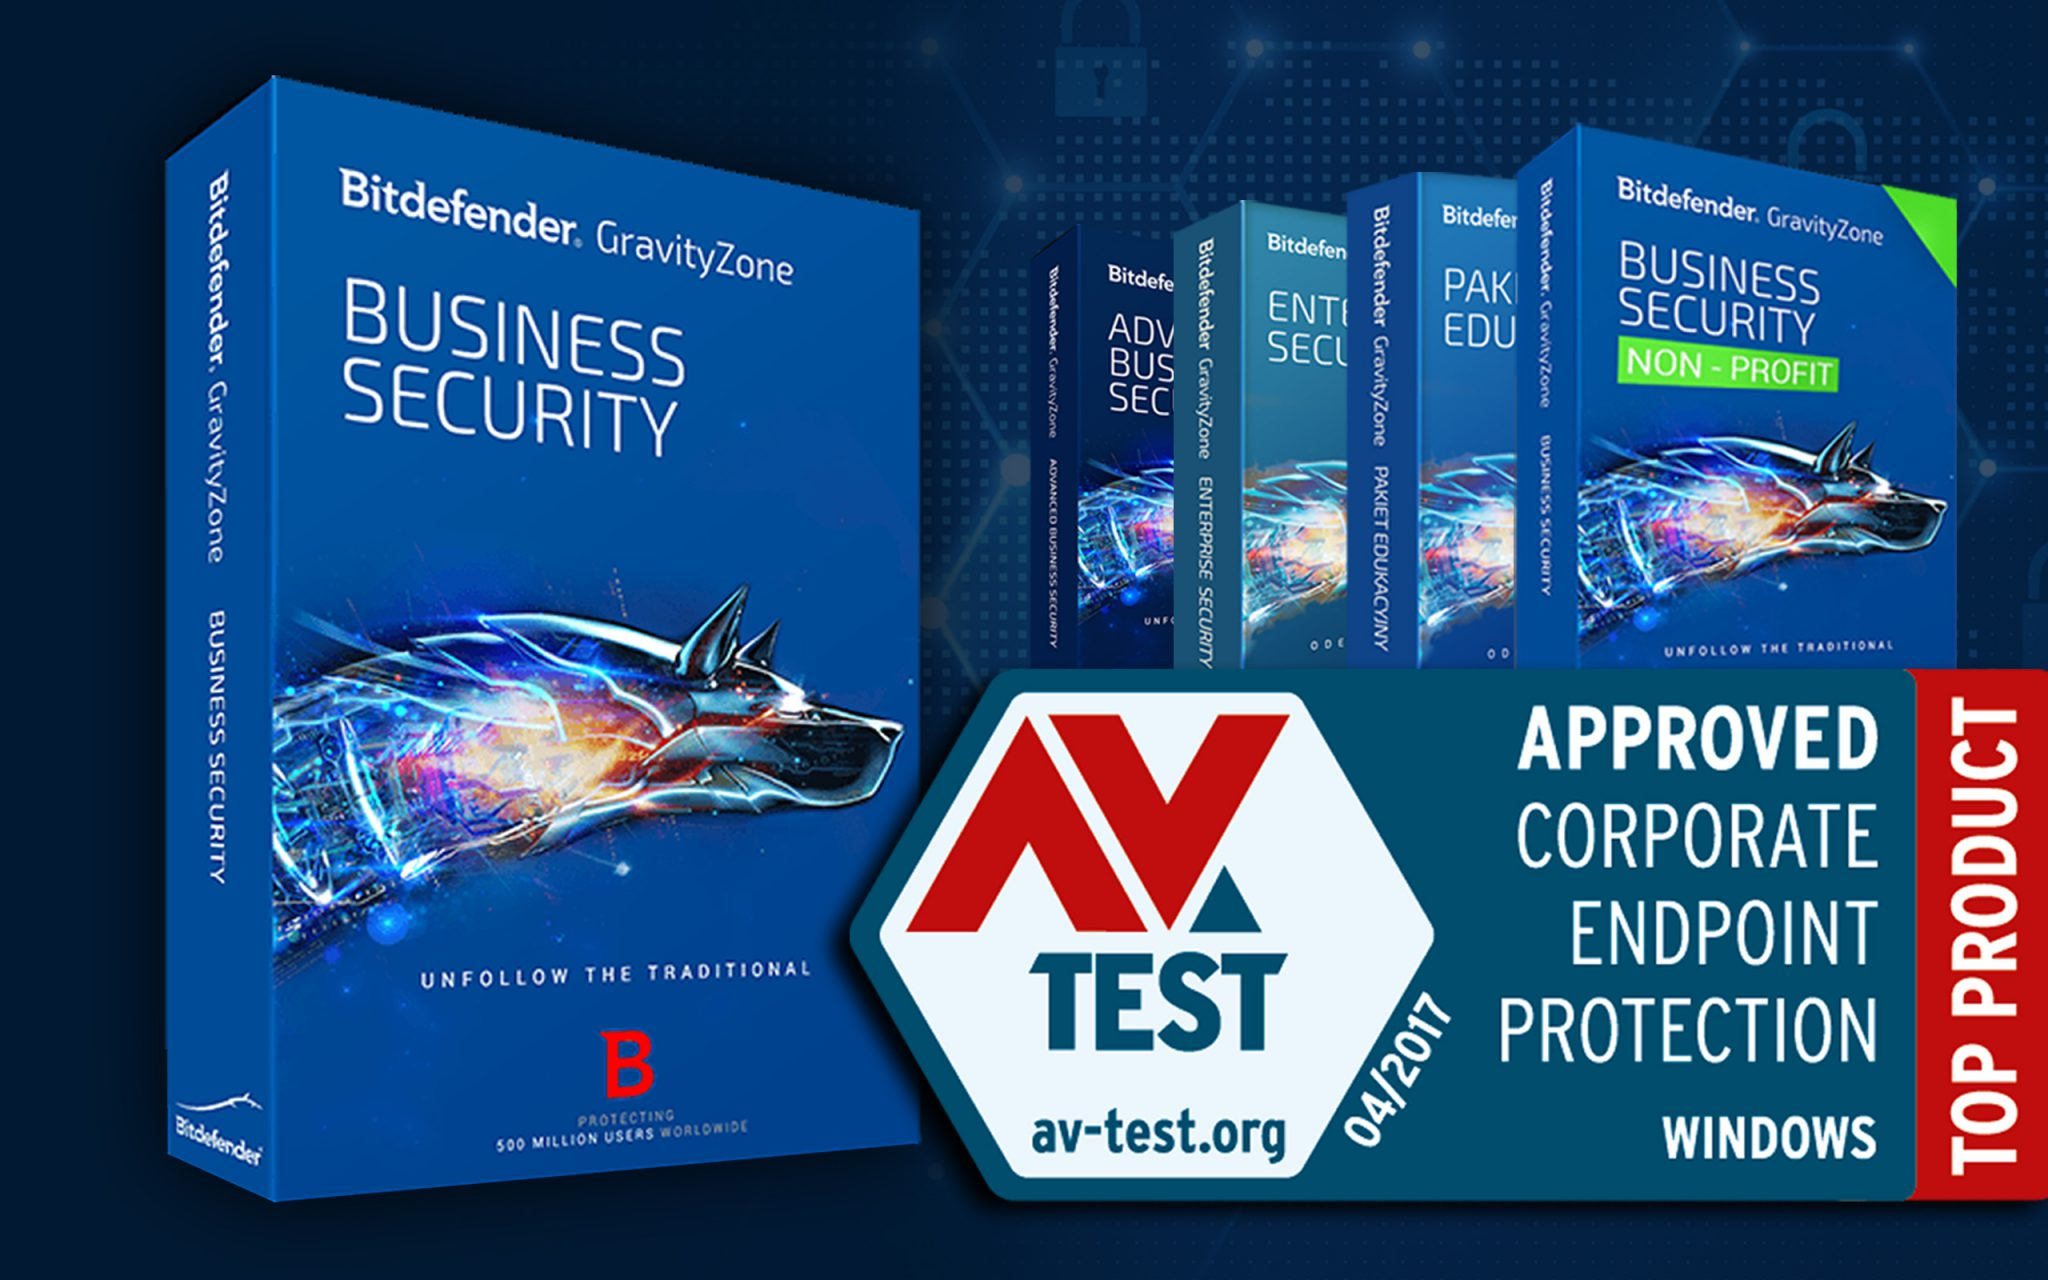 avtest-kwiecien-bitdefender-2017-top-produt-copy